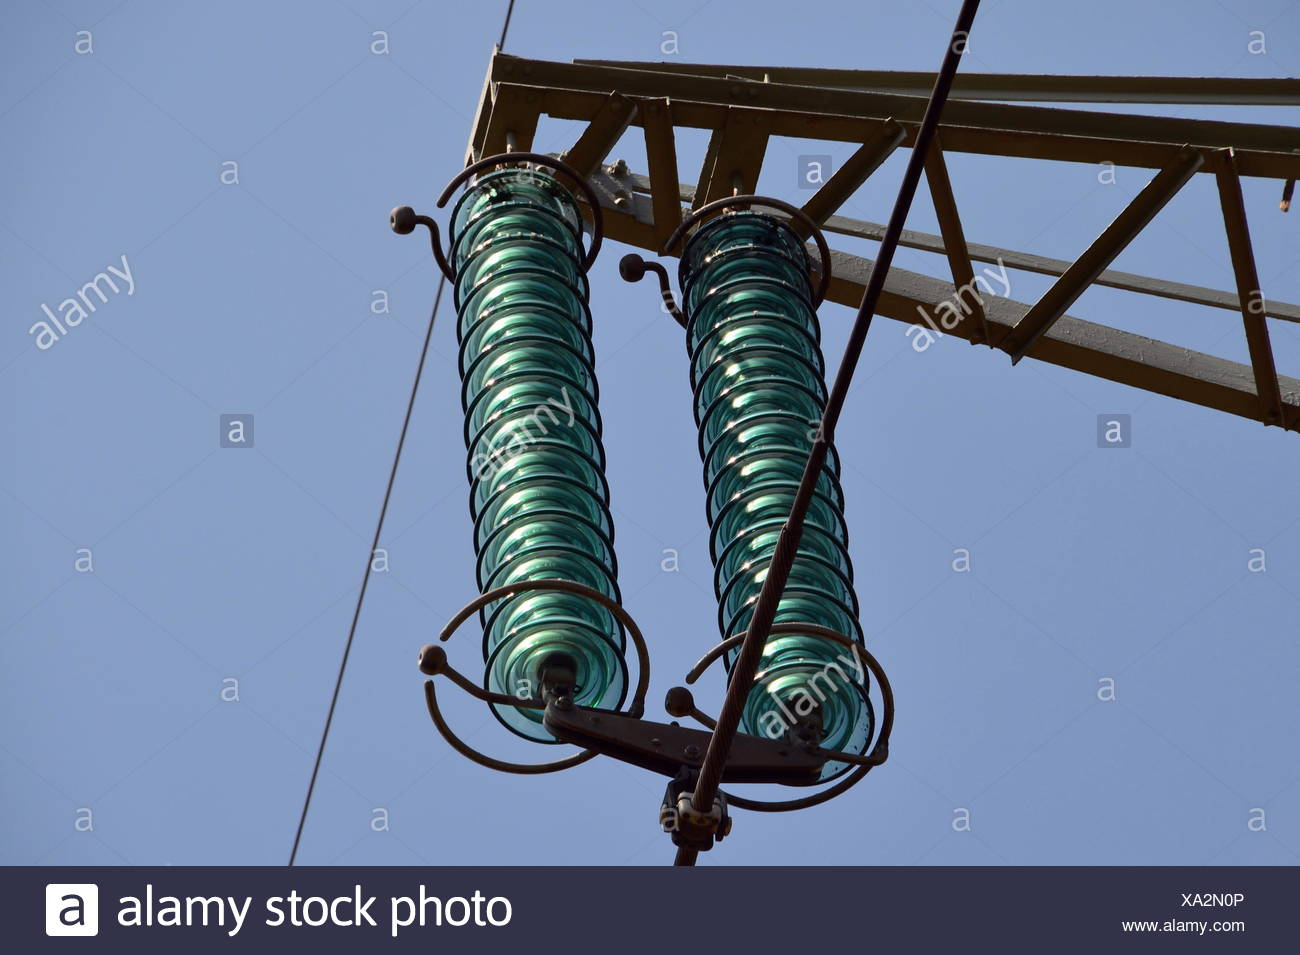 electricity - Stock Image